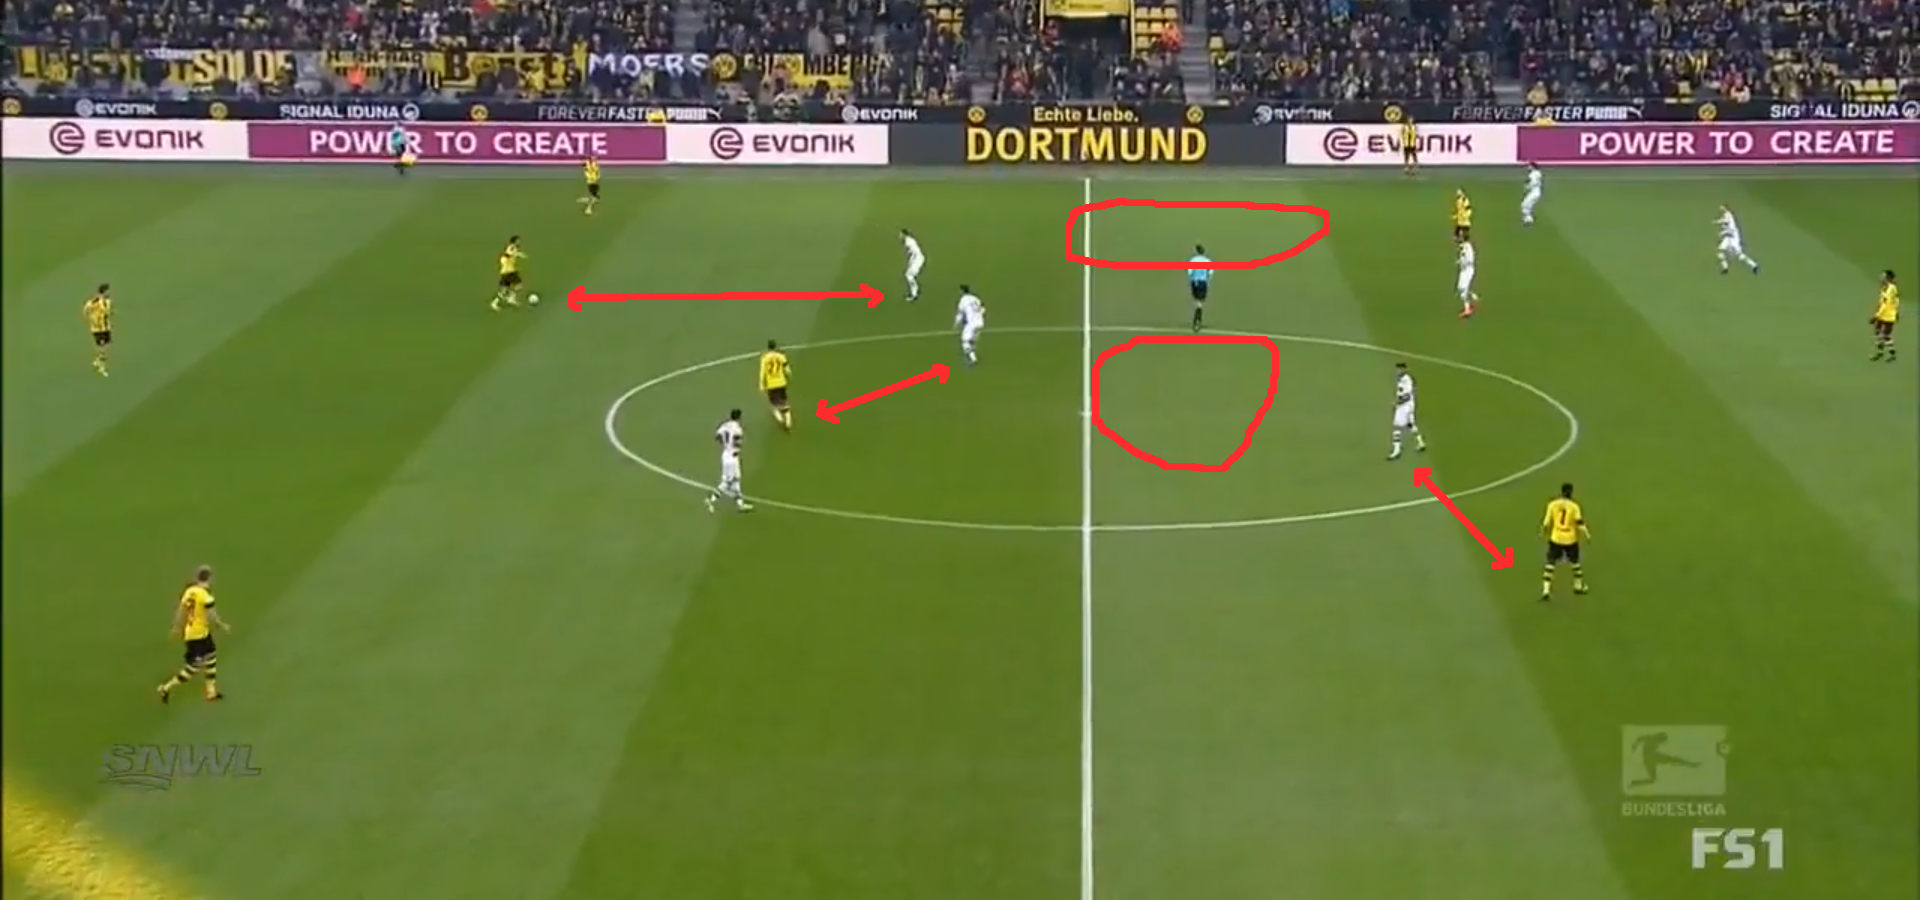 Dortmund defender has a simple first pass option to the fullback available and their central midfielders are open for the second pass.